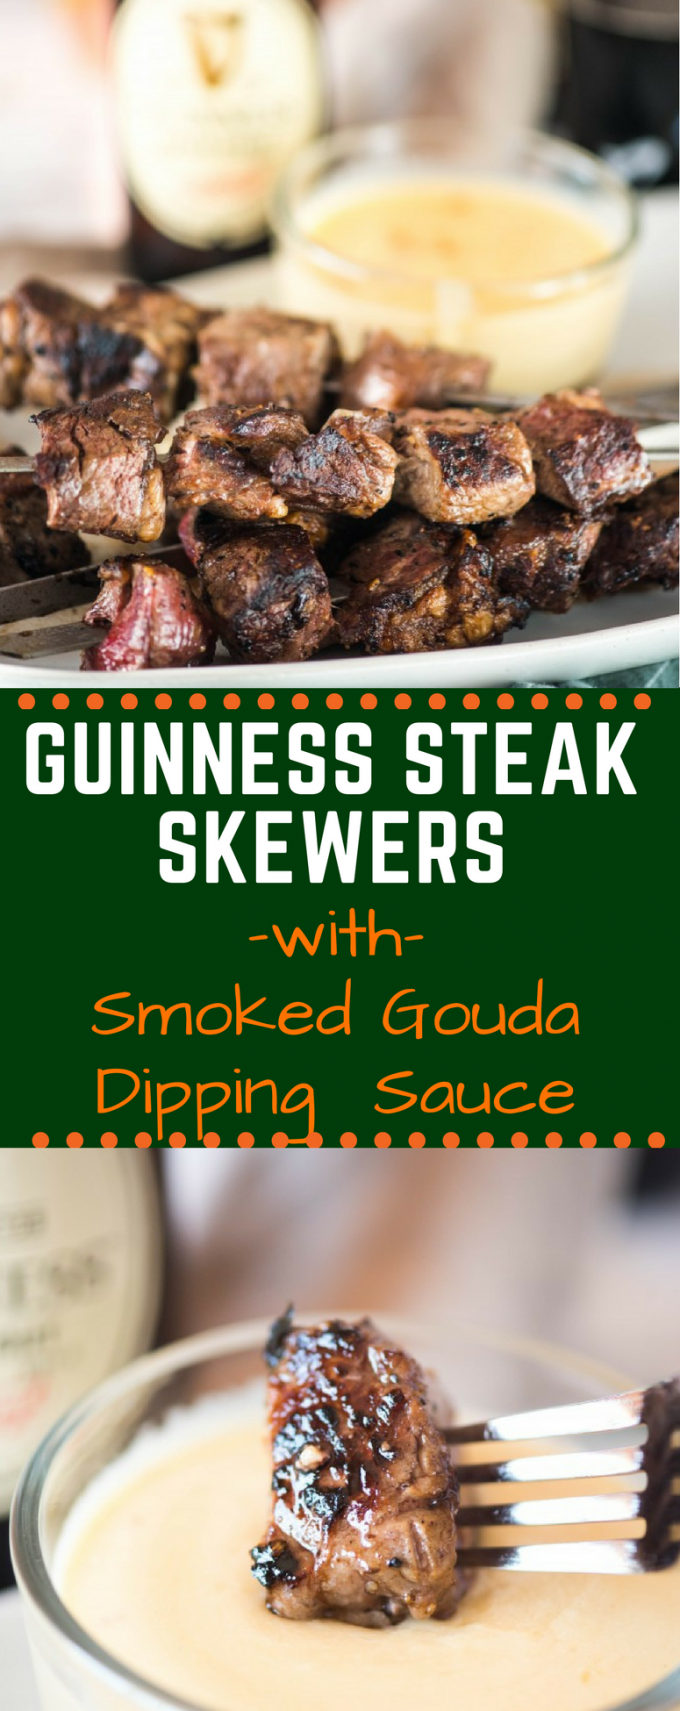 These Guinness Steak Skewers with Smoked Gouda Dipping Sauce are a fun and easy dinner that everyone is sure to love. Perfect for a traditional St. Patrick's day party - or any day! #stpatricksday #stpatricksdayfood #guinnesssteakskewers #guinnessrecipes #gogogogourmet via @gogogogourmet